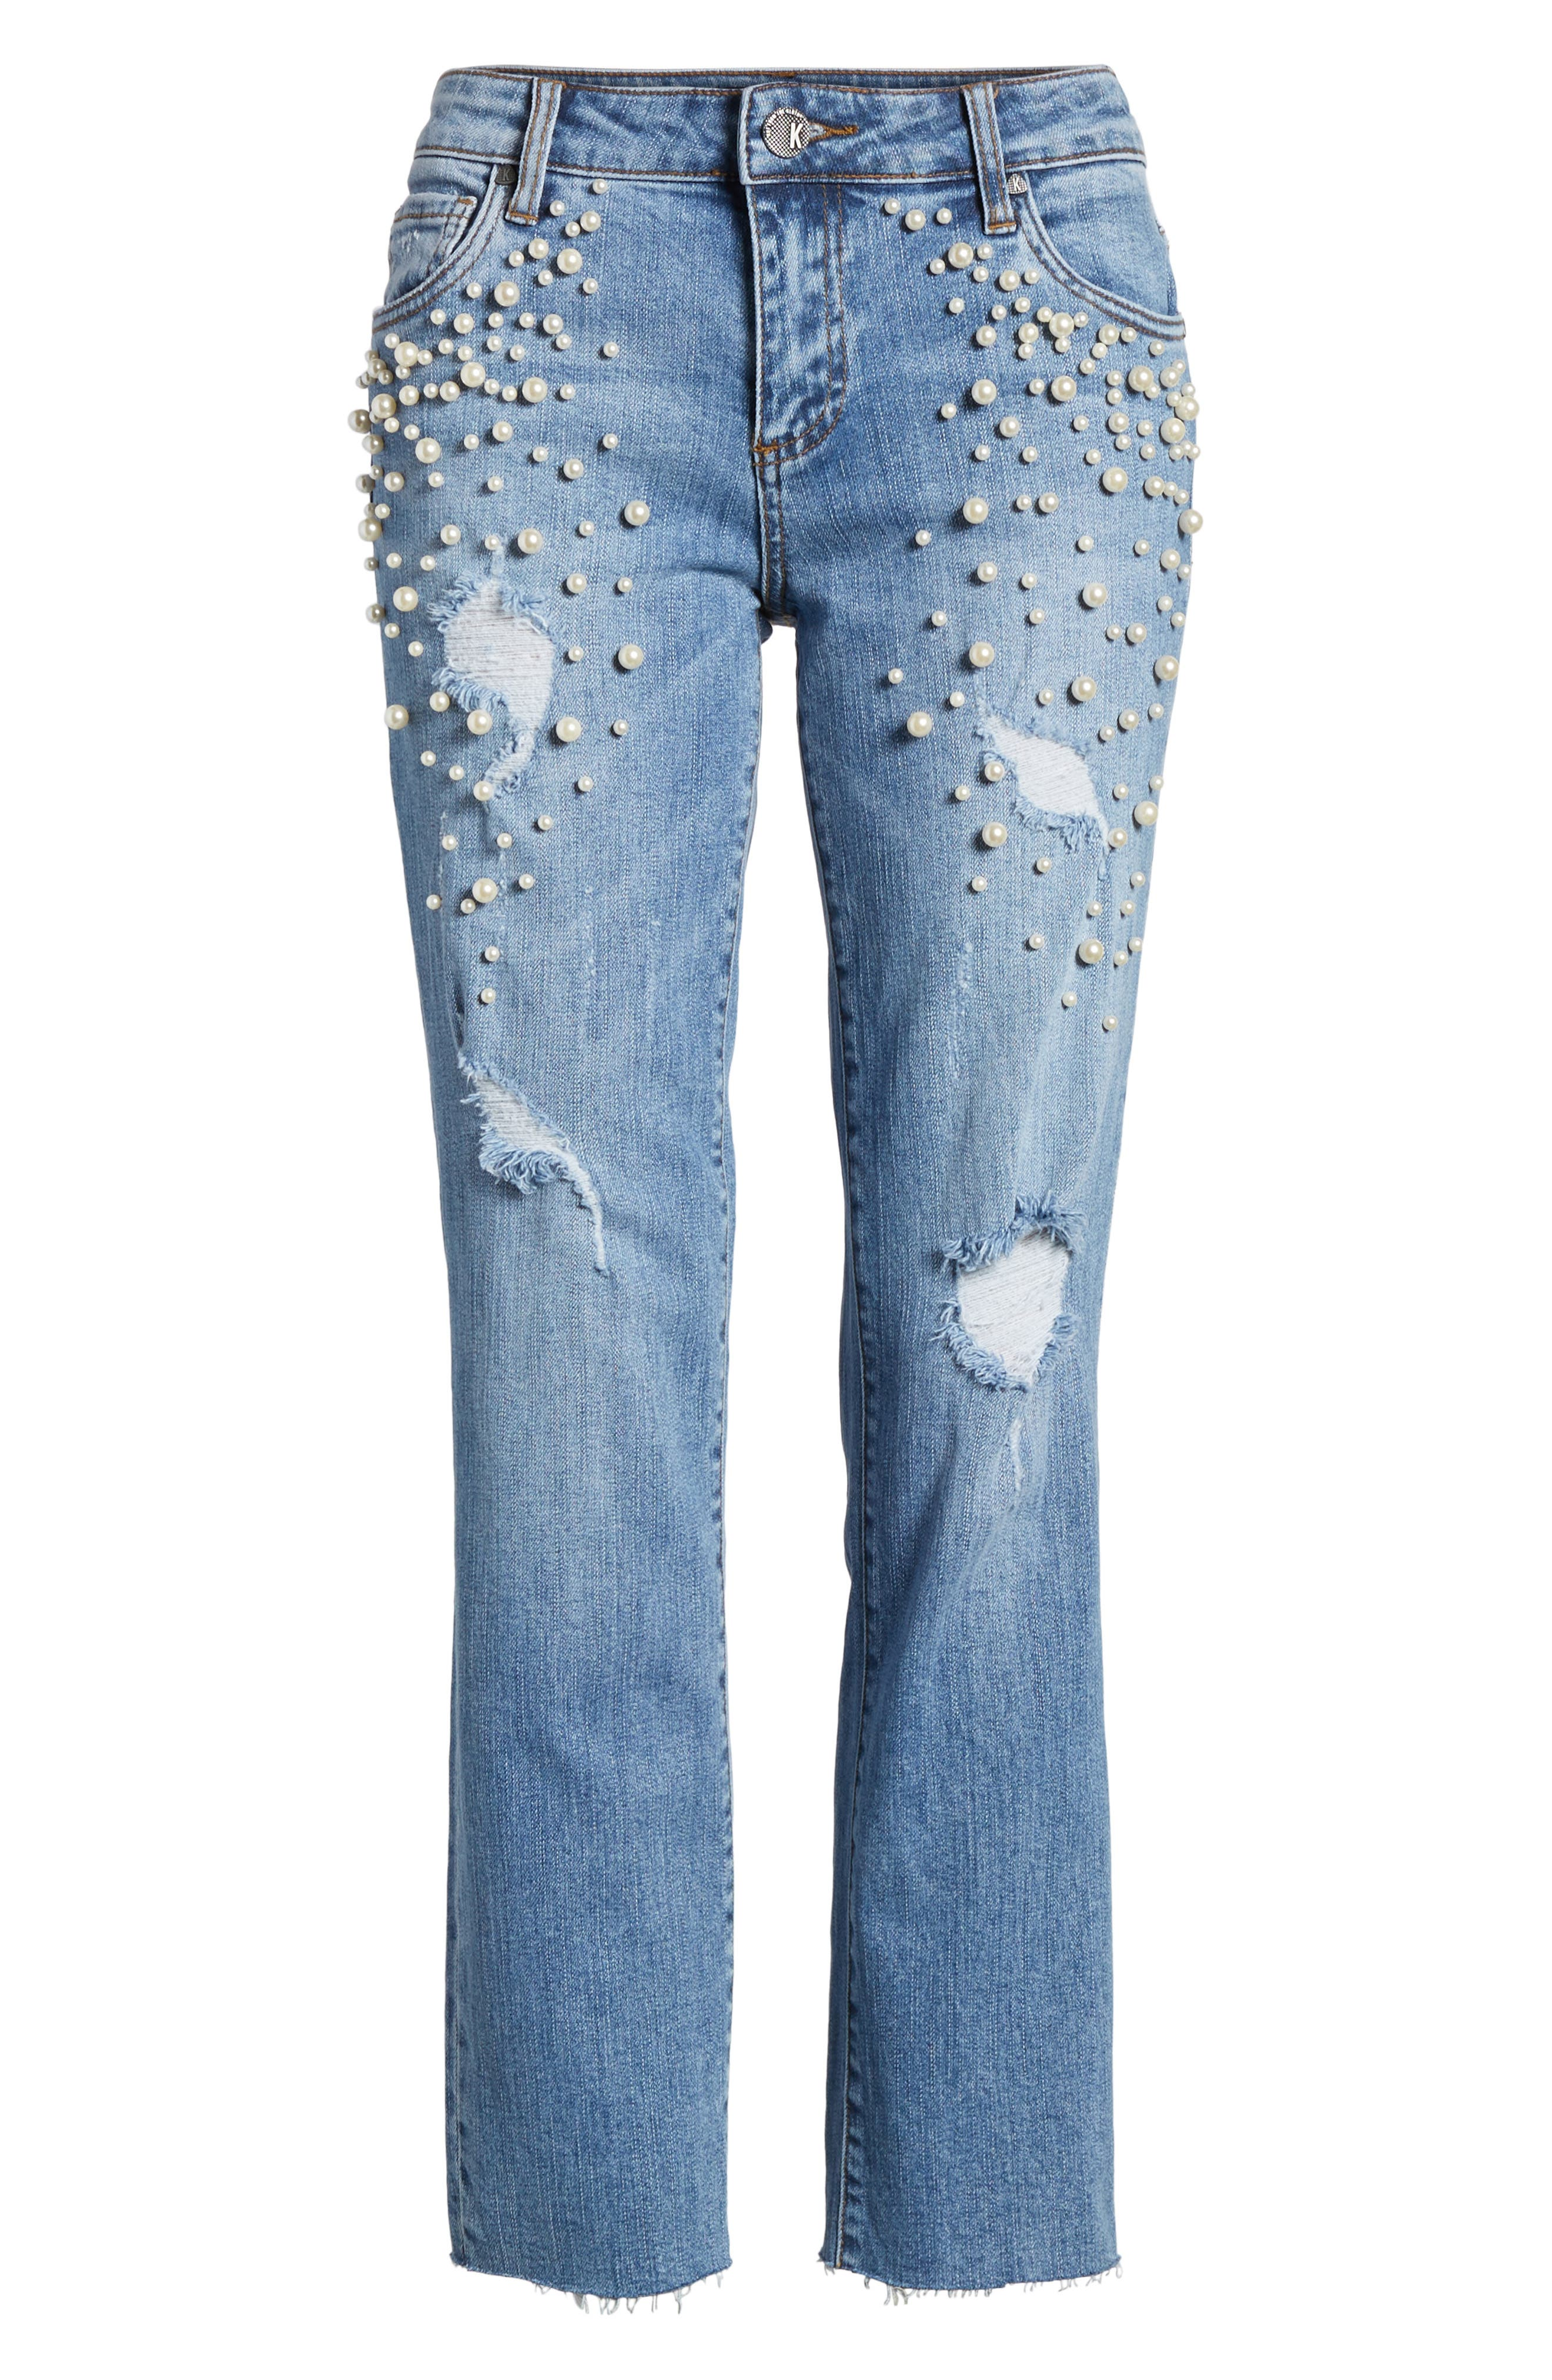 Reese Pearl Detail Raw Edge Jeans,                             Alternate thumbnail 6, color,                             439